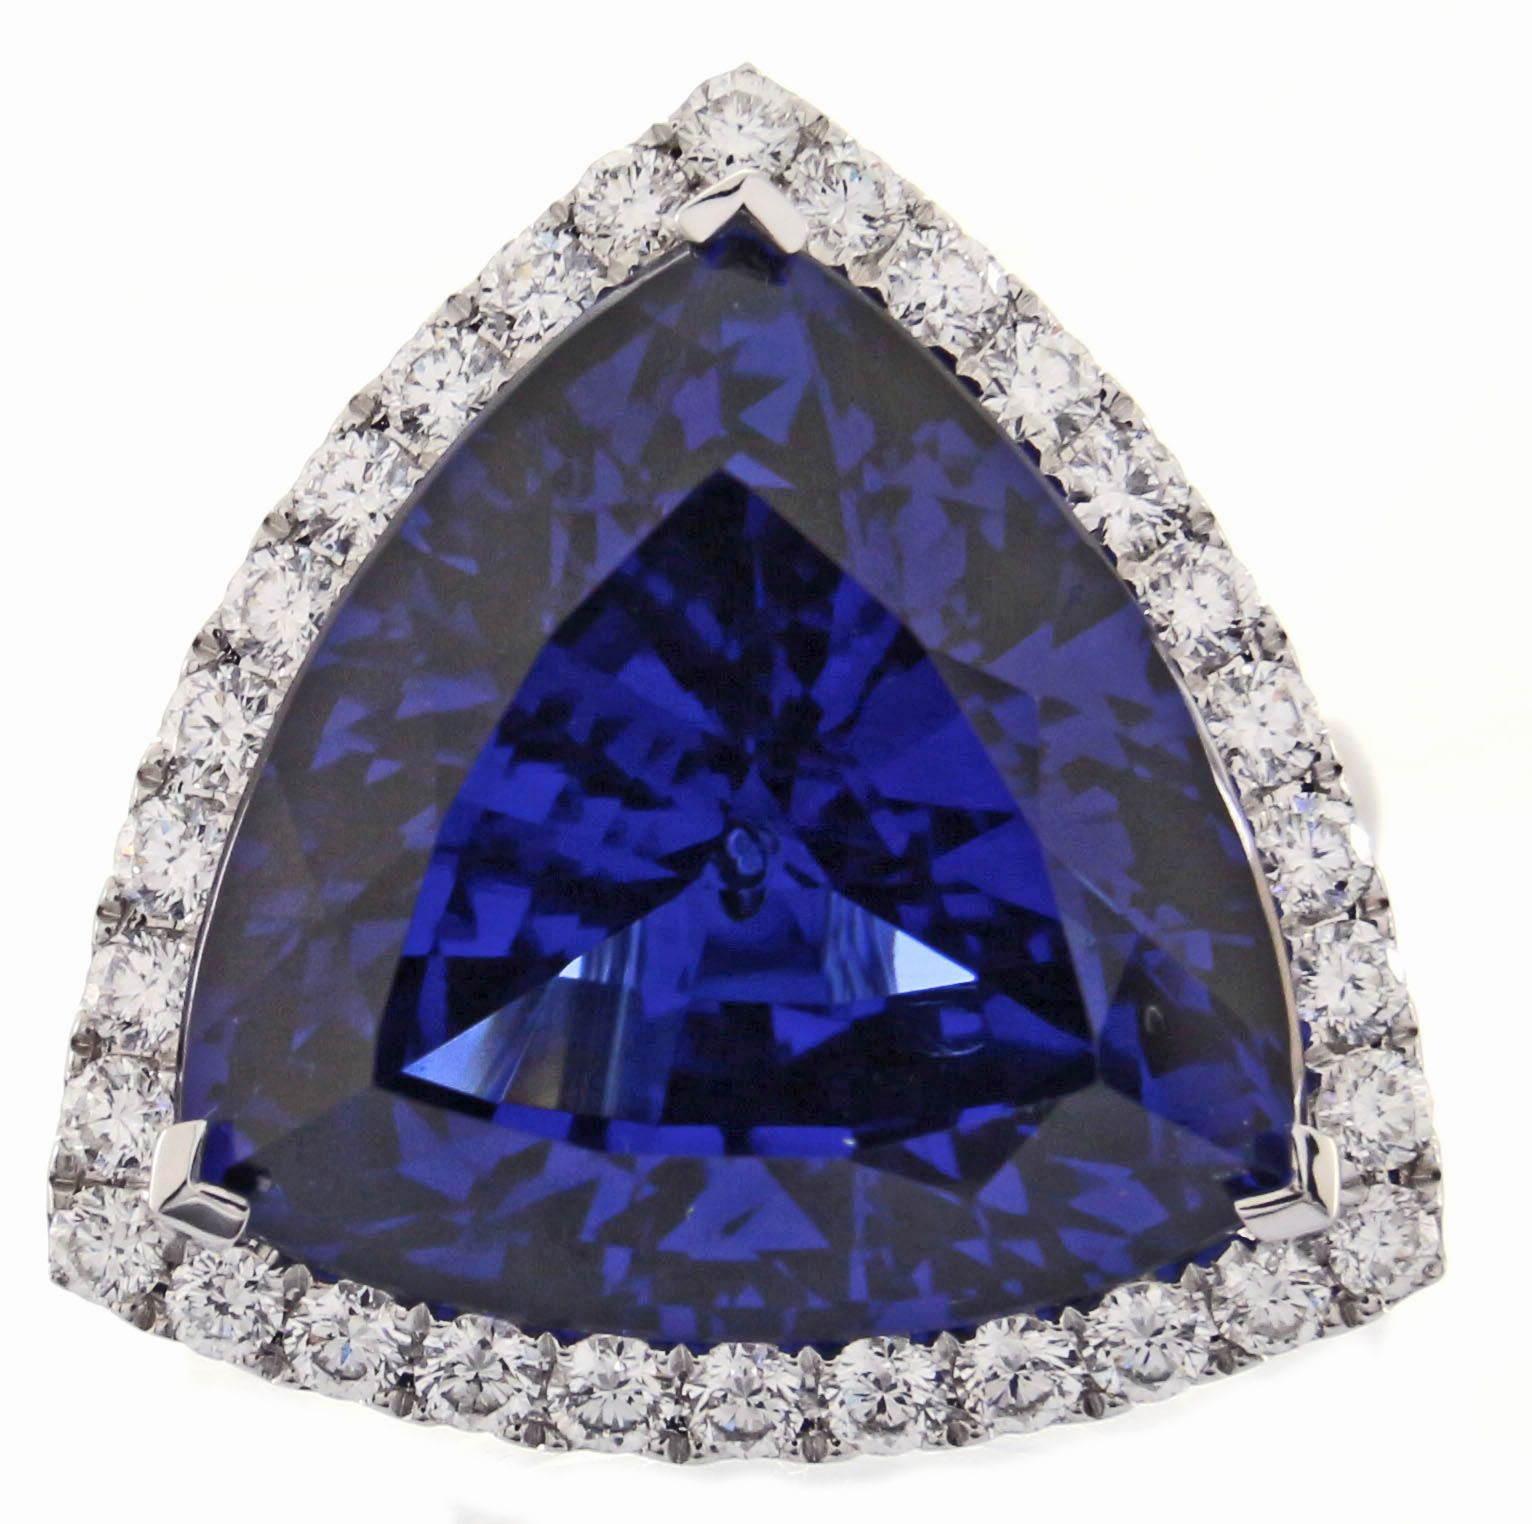 rings diamond top by beautiful gemstone like the royalty pin blue surrounded halos pave look with